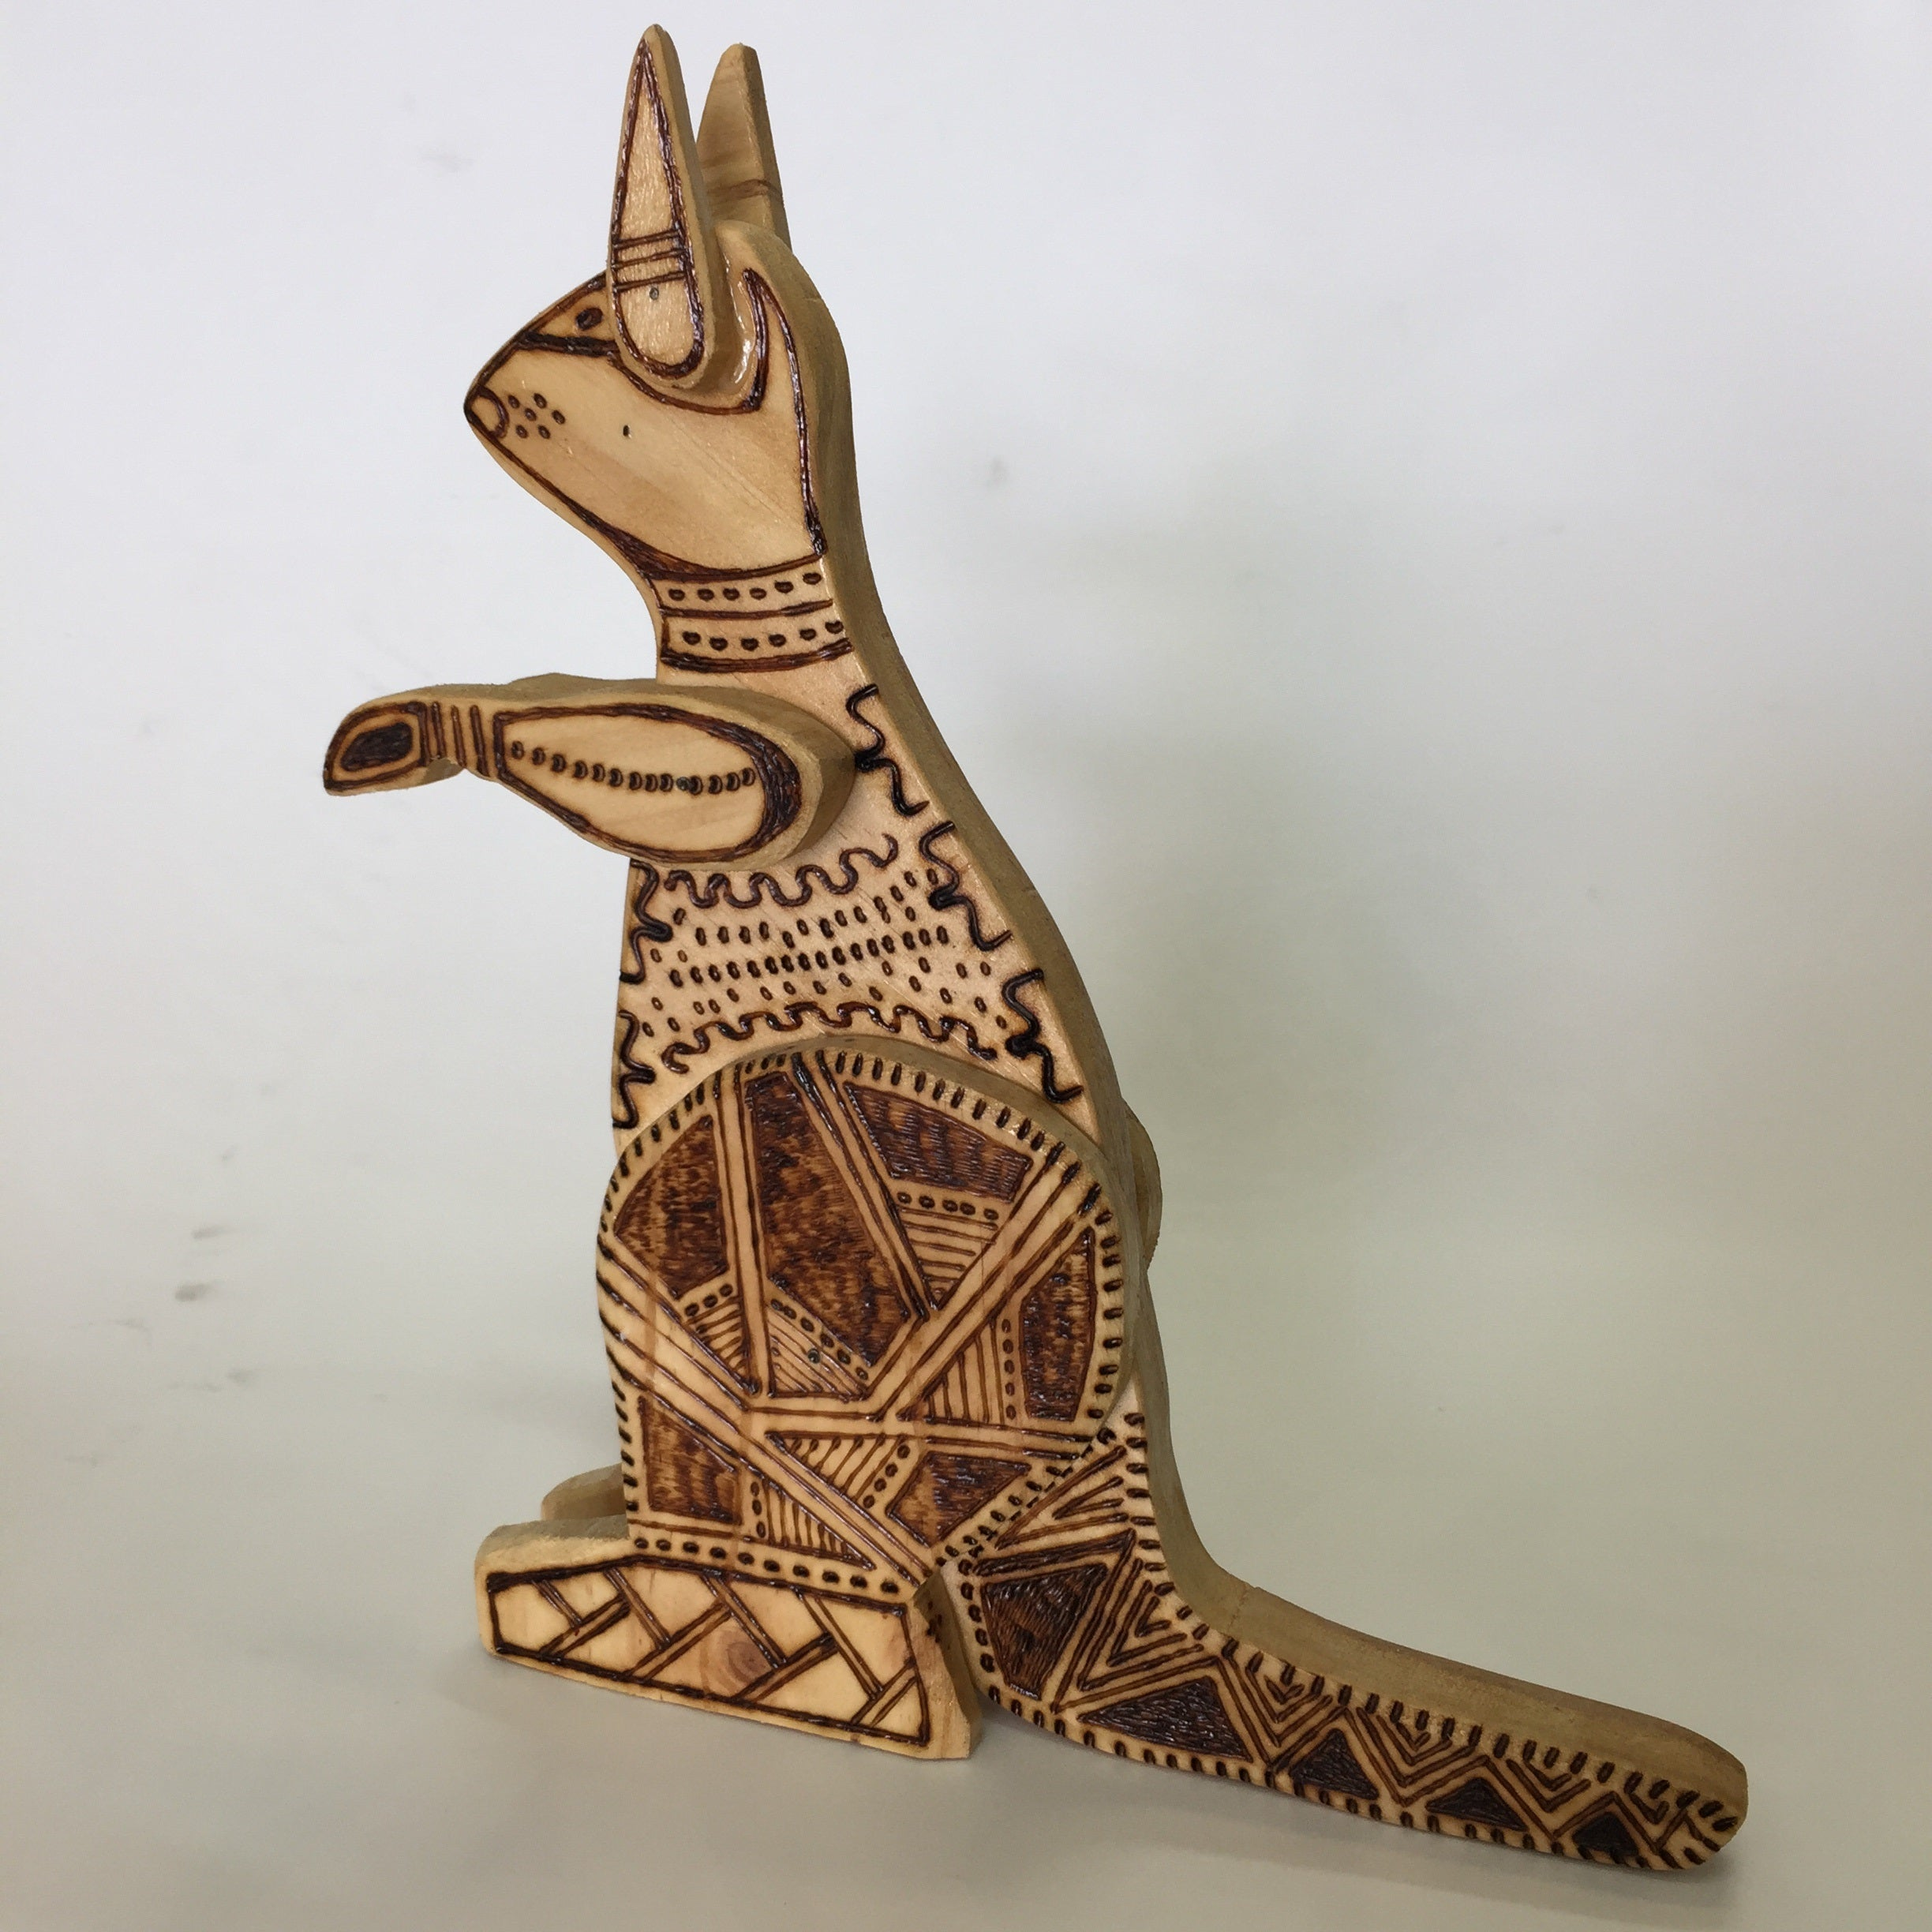 'Guruhman' Kangaroo | Burnt Wood